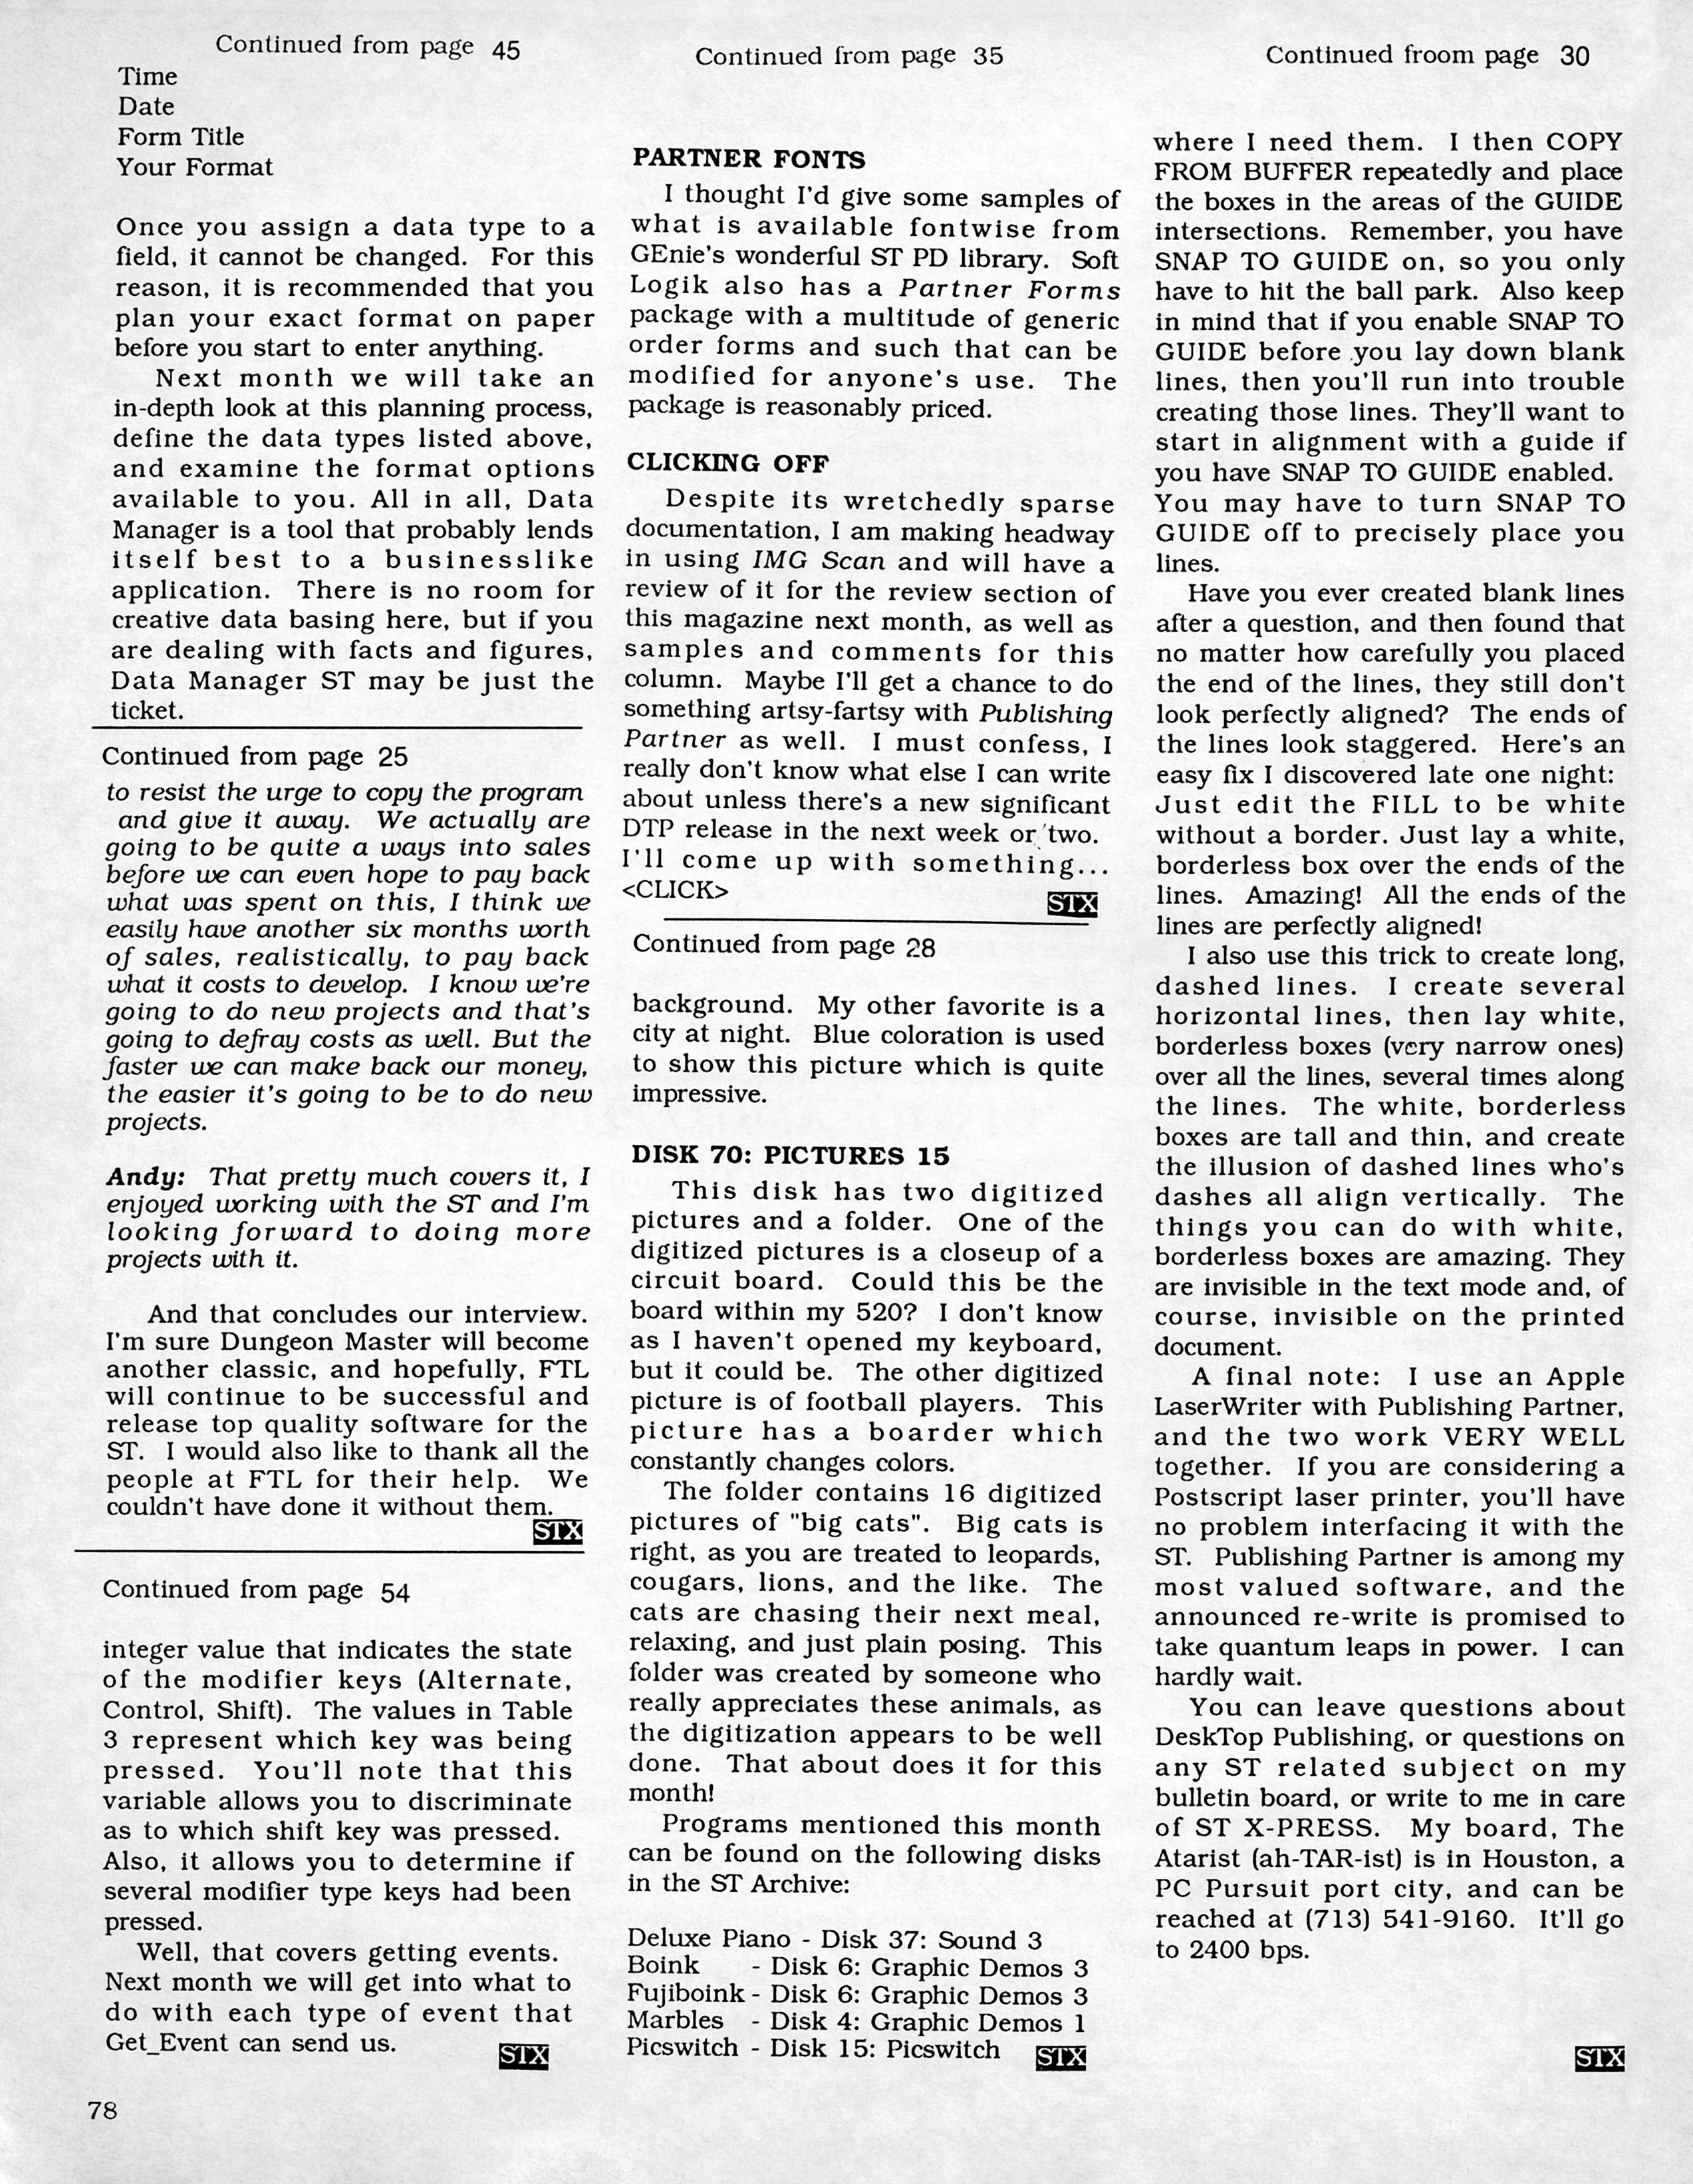 FTL Interview published in American magazine 'ST X-PRESS', Vol 2 No 2 March 1988, Page 78